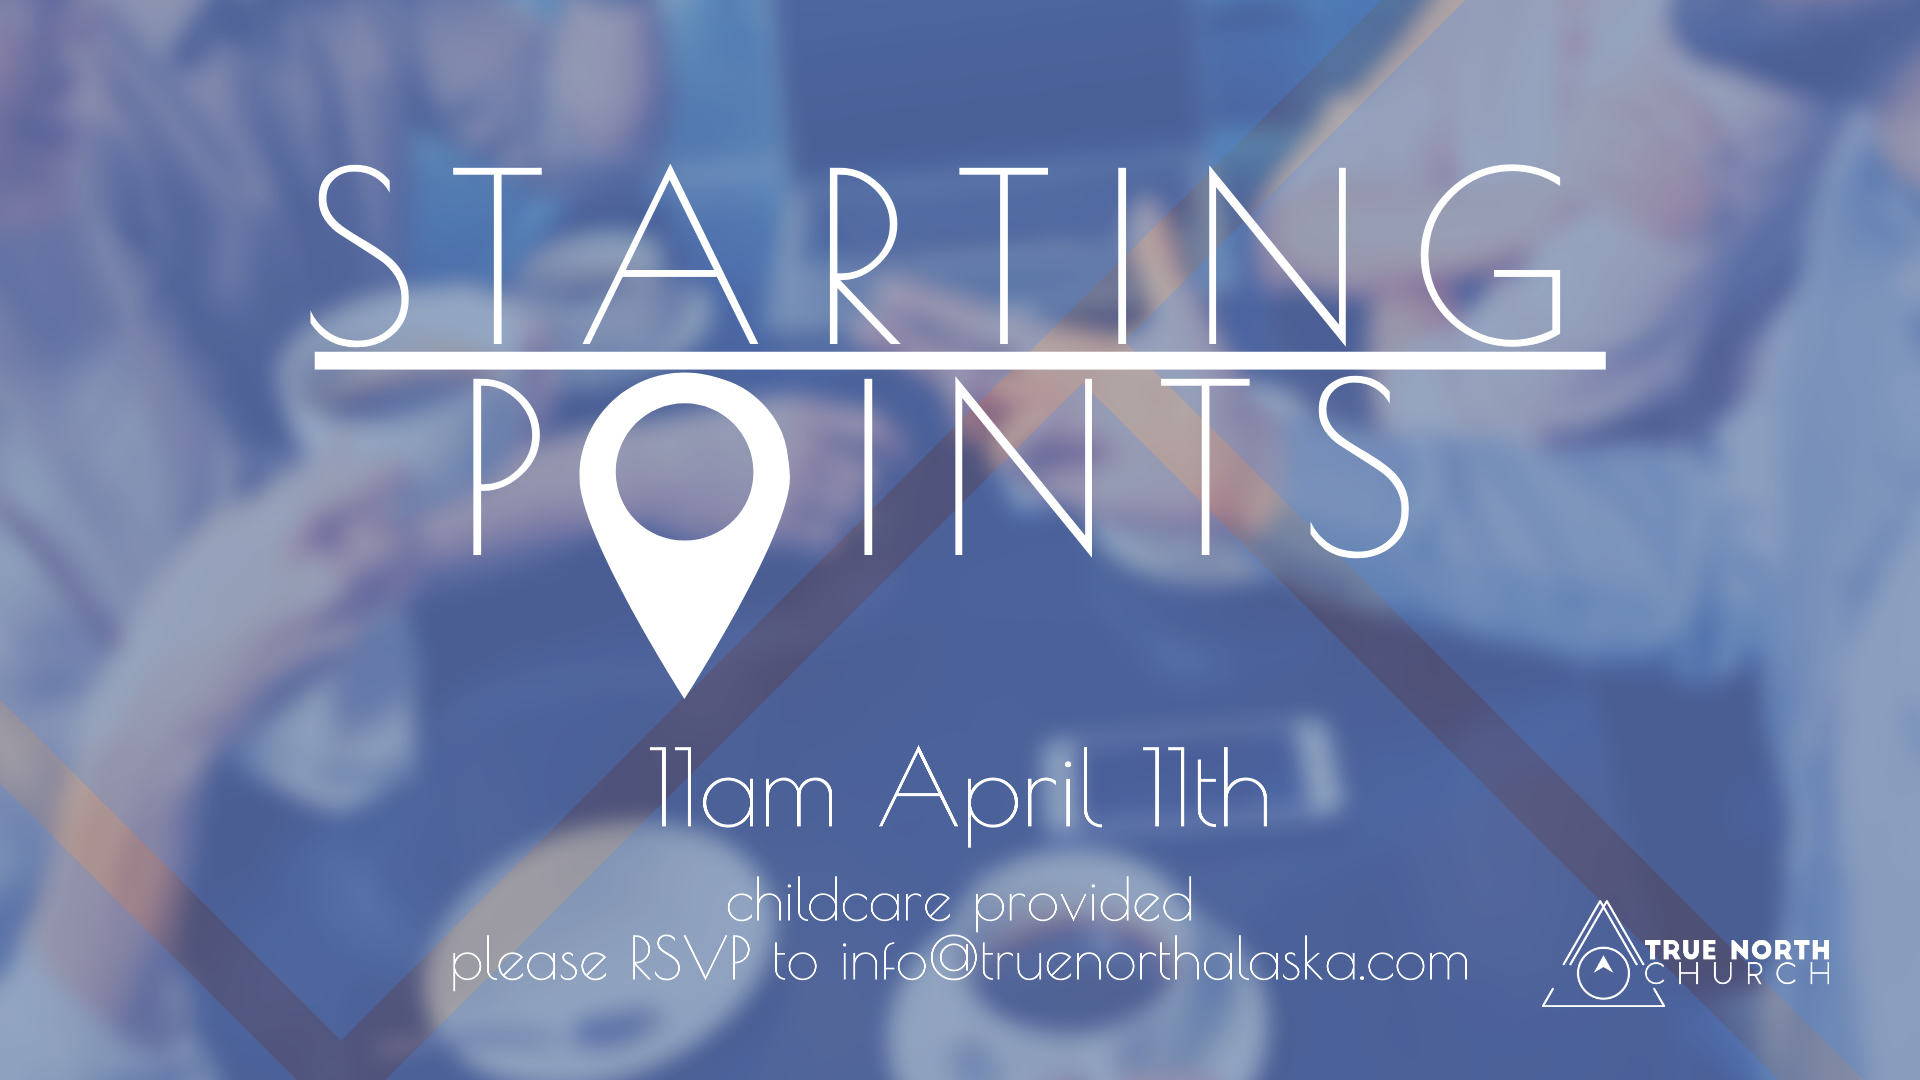 Starting Points Announcement April 11th